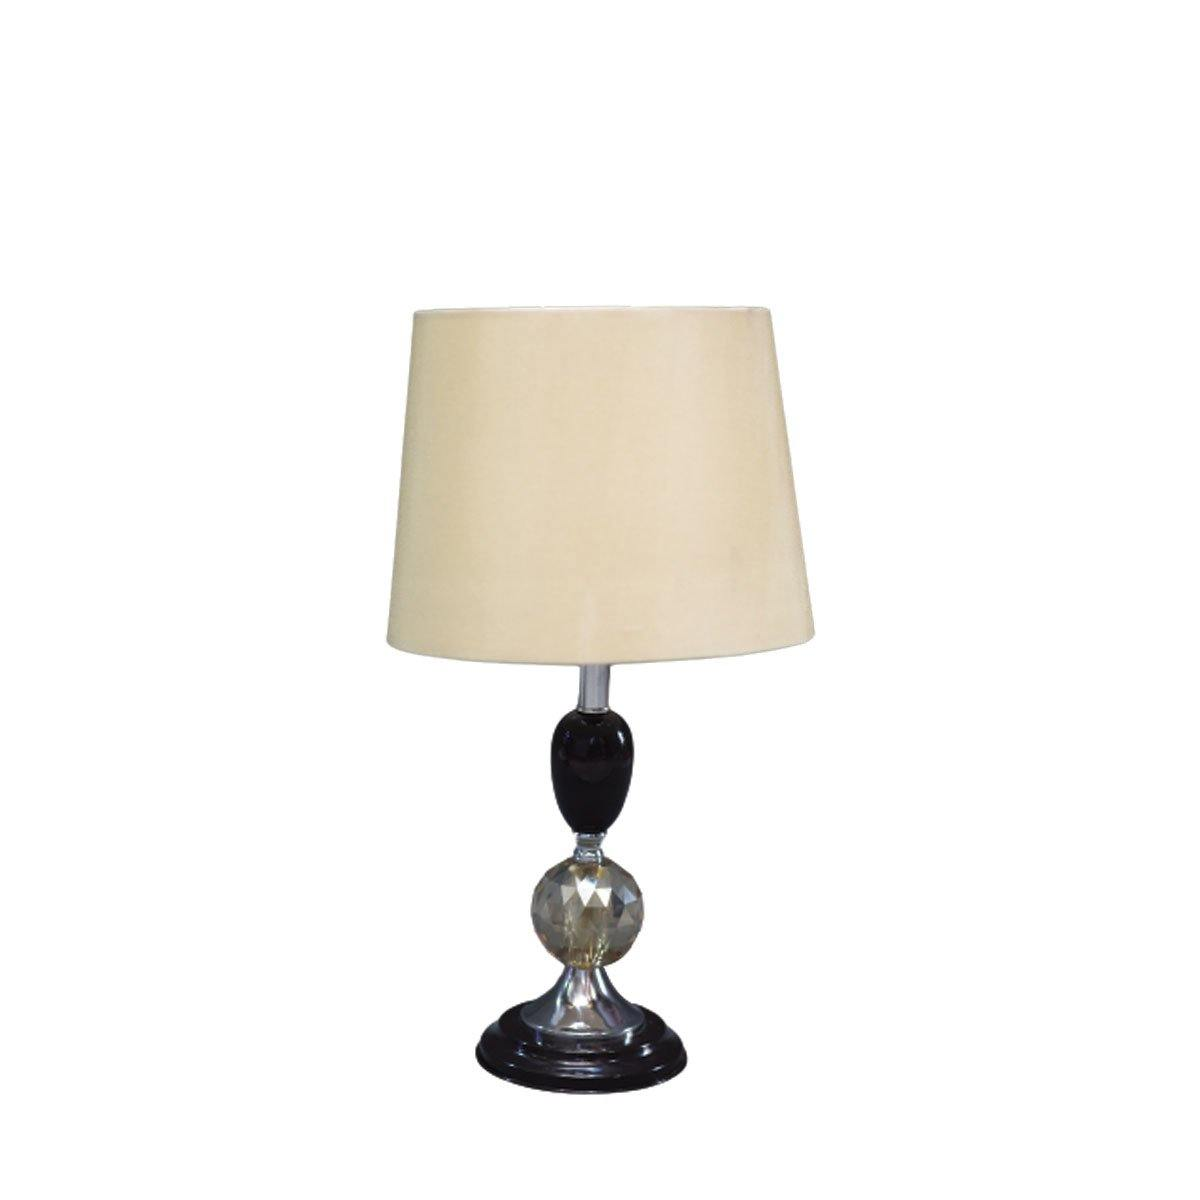 Black Tined Lamp